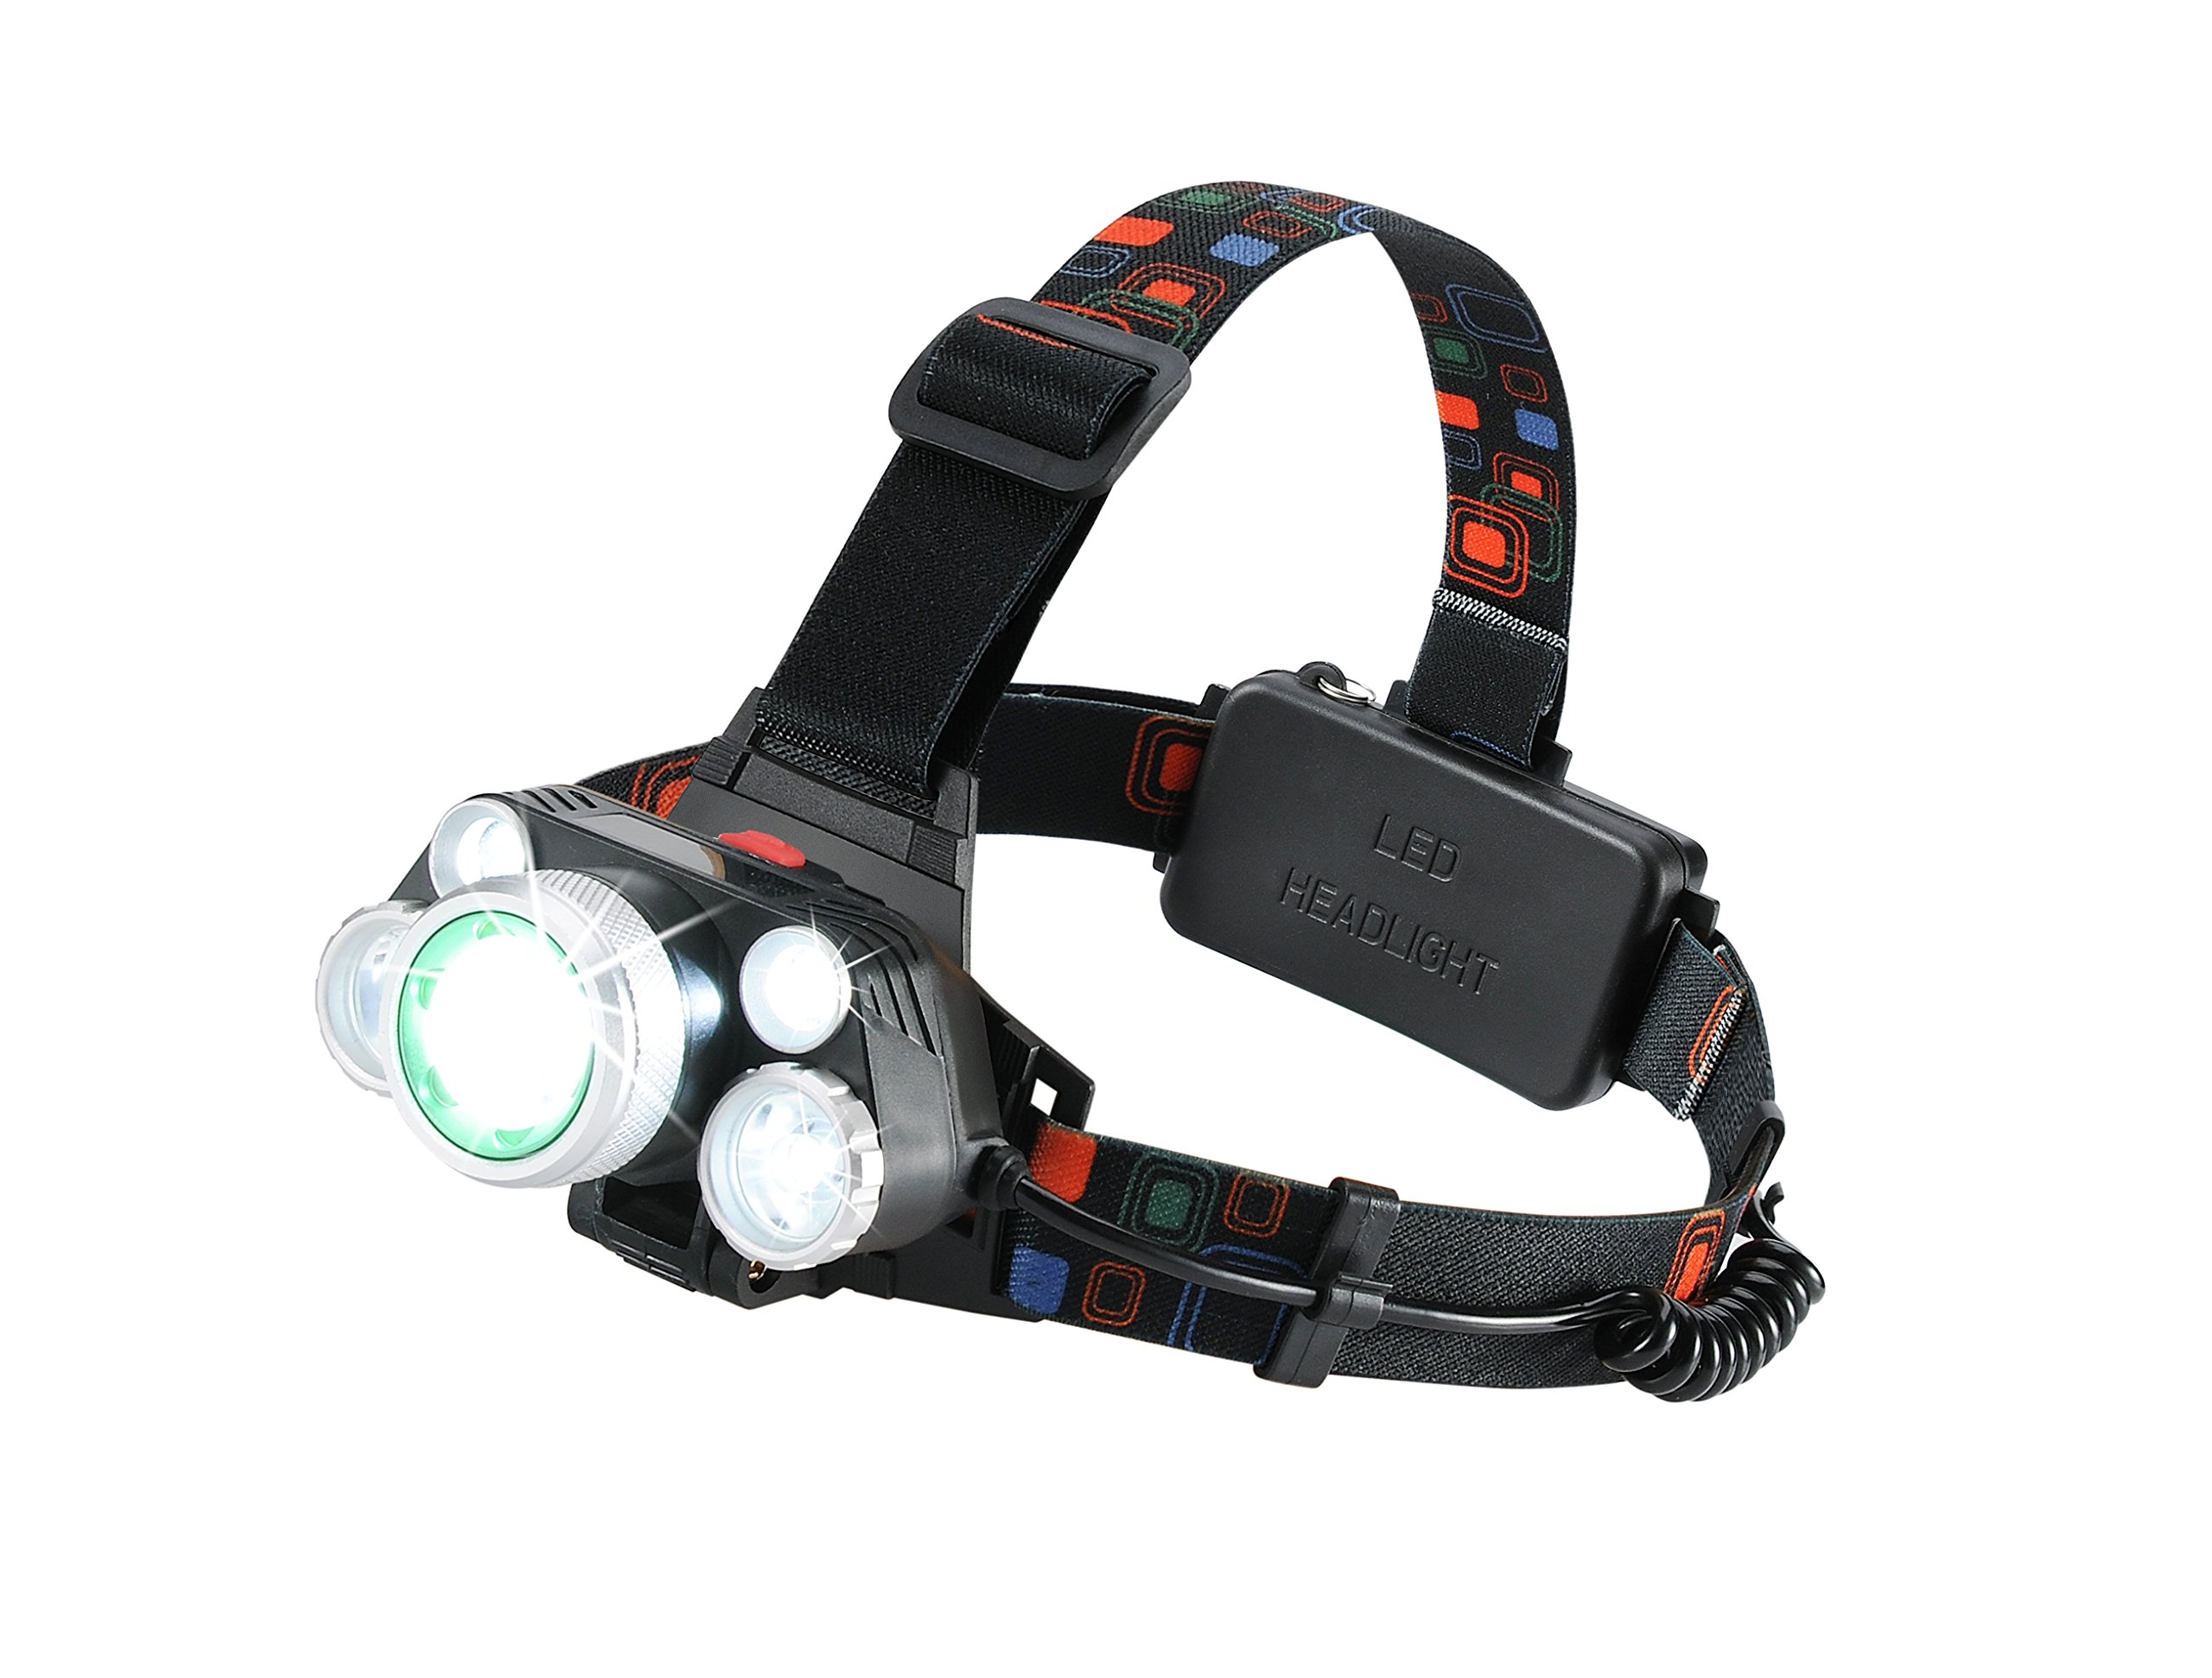 LED Headlamp By Purpose Force: Rechargeable Headlight Assembly With Zoomable Light & 4 Brightness Modes – Adjustable Head Lamp Flashlight For Cycling, Running, Hiking, Fishing – 3 Chargers Included